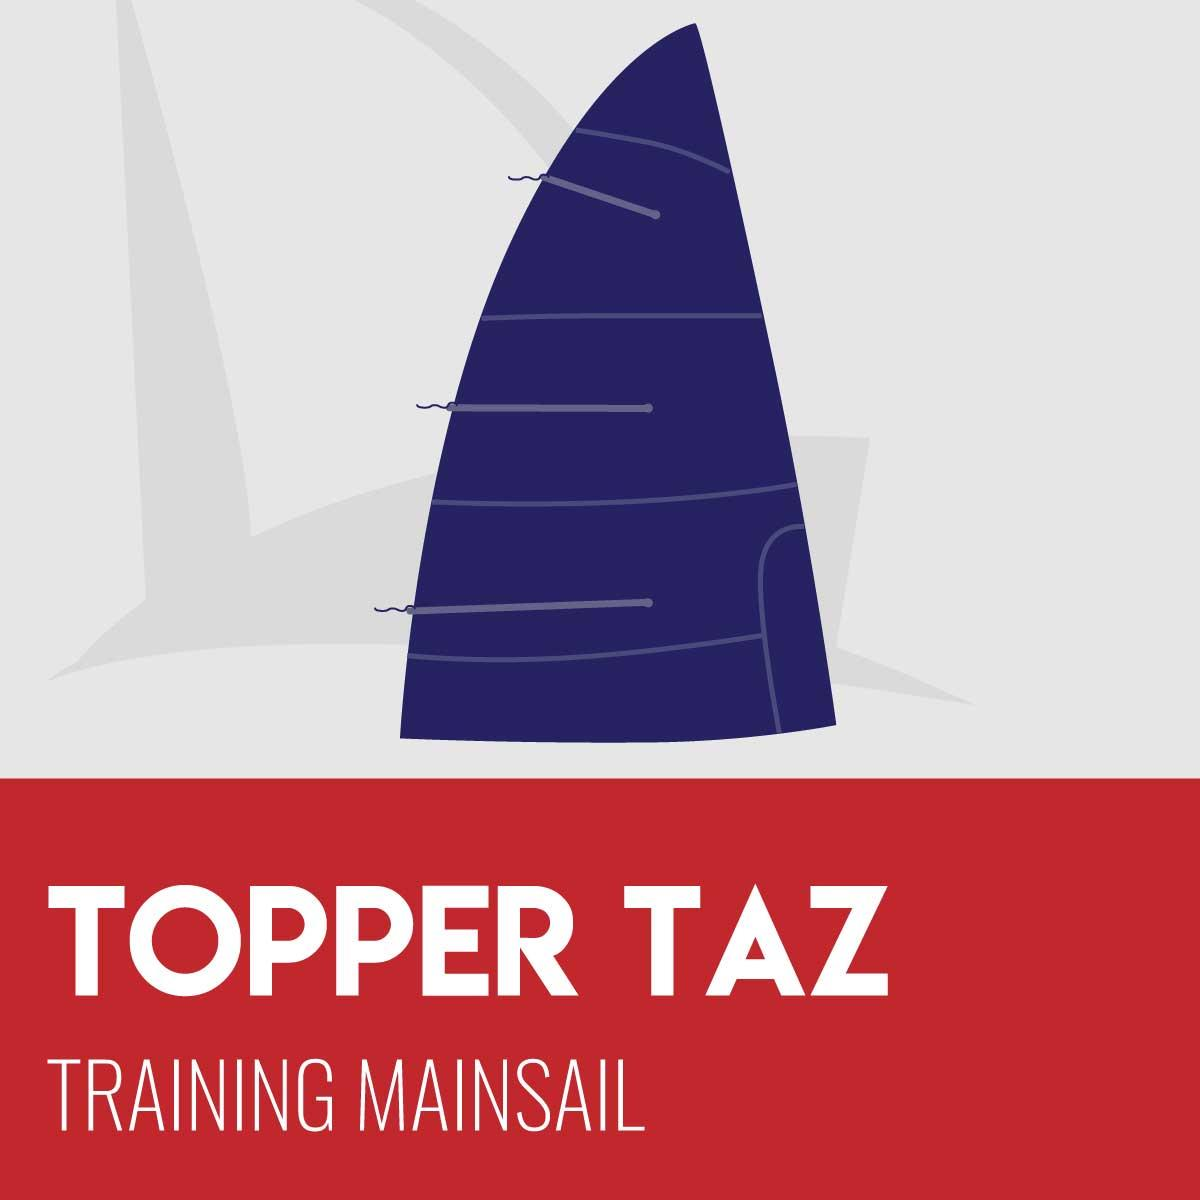 Topper Taz Training Mainsail